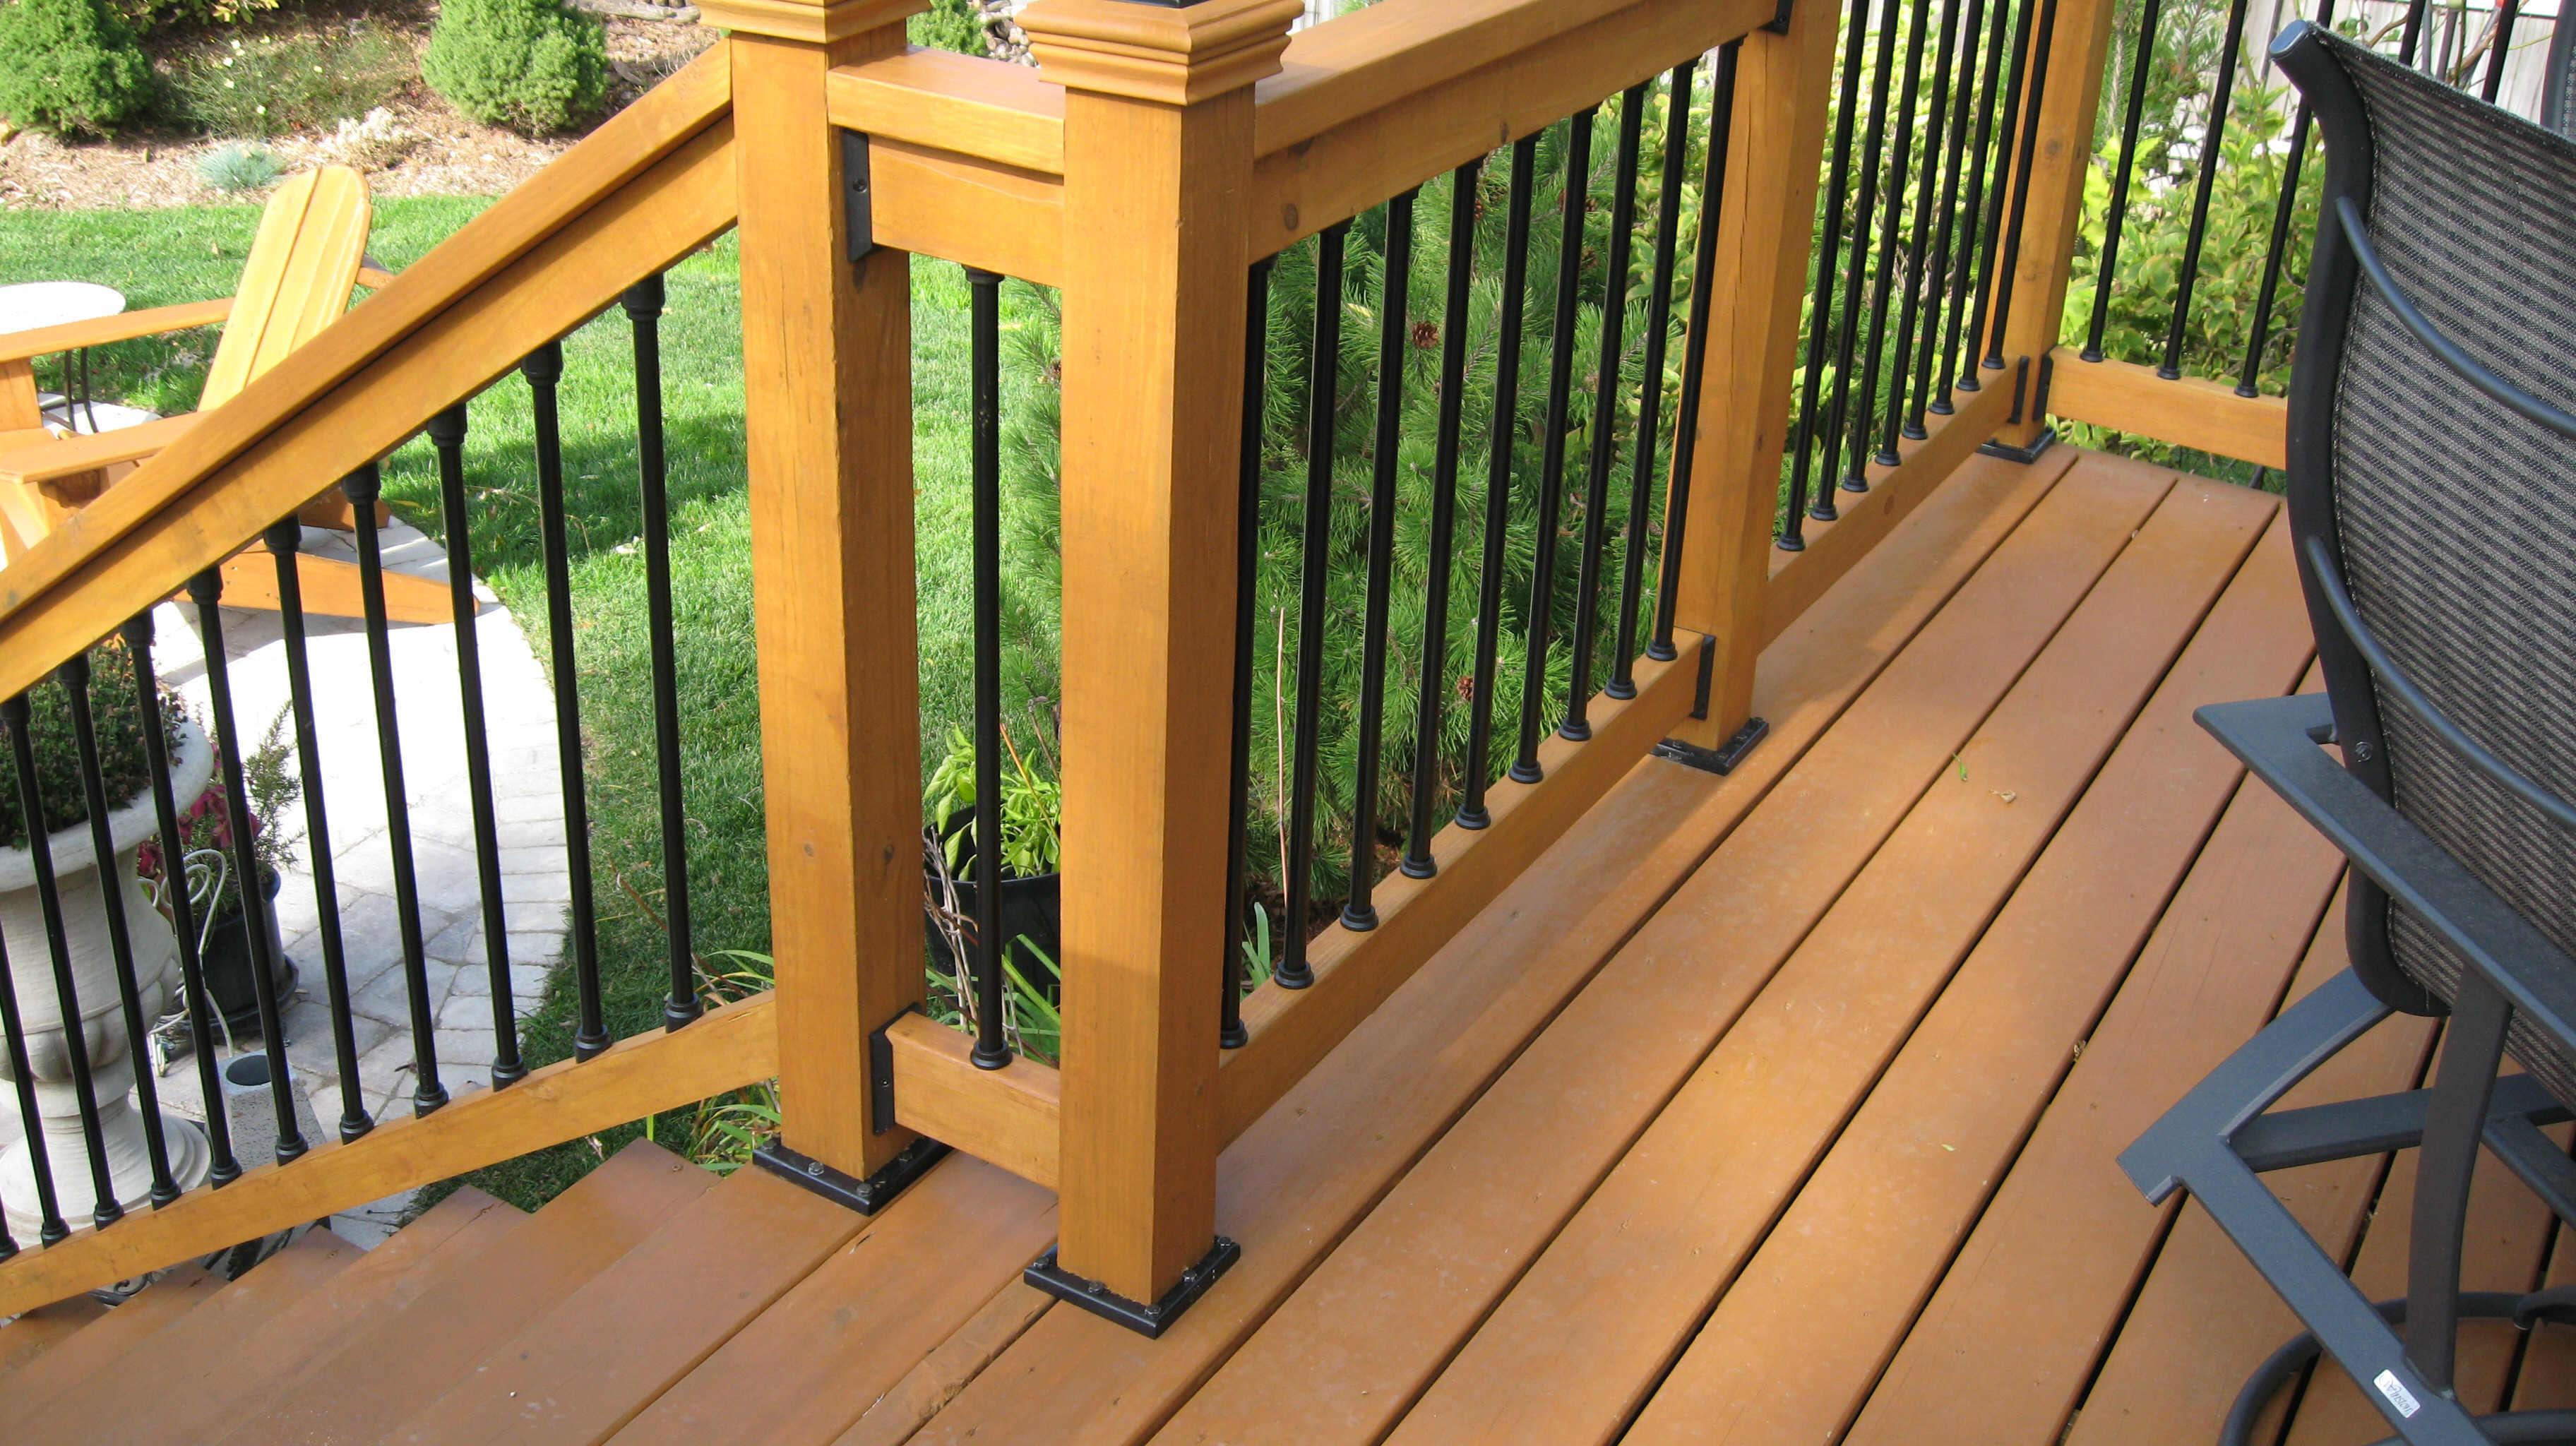 Pressure Treated Wood Garden Safety Carolina Wood Decks